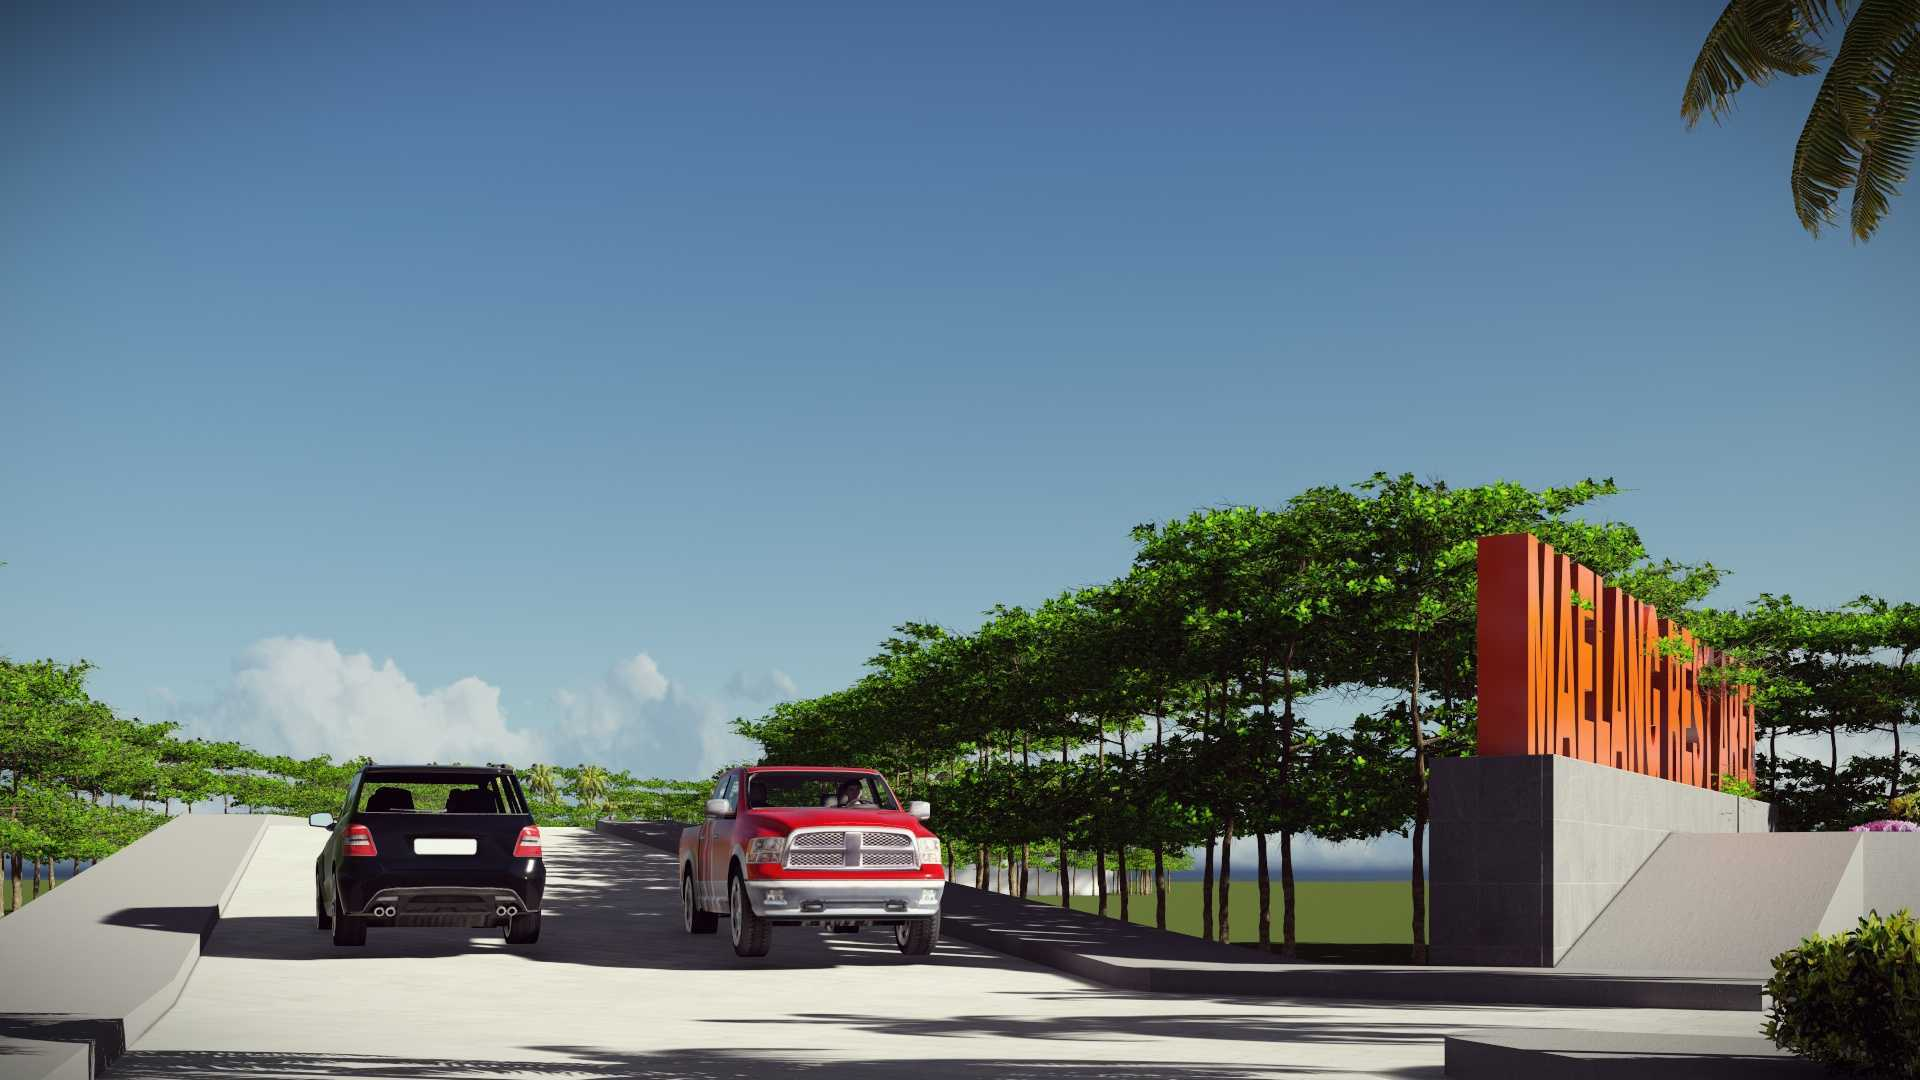 Mannor Architect Maelang Parking Area Gorontalo, Indonesia Gorontalo, Indonesia Maelang Rest Area   40747